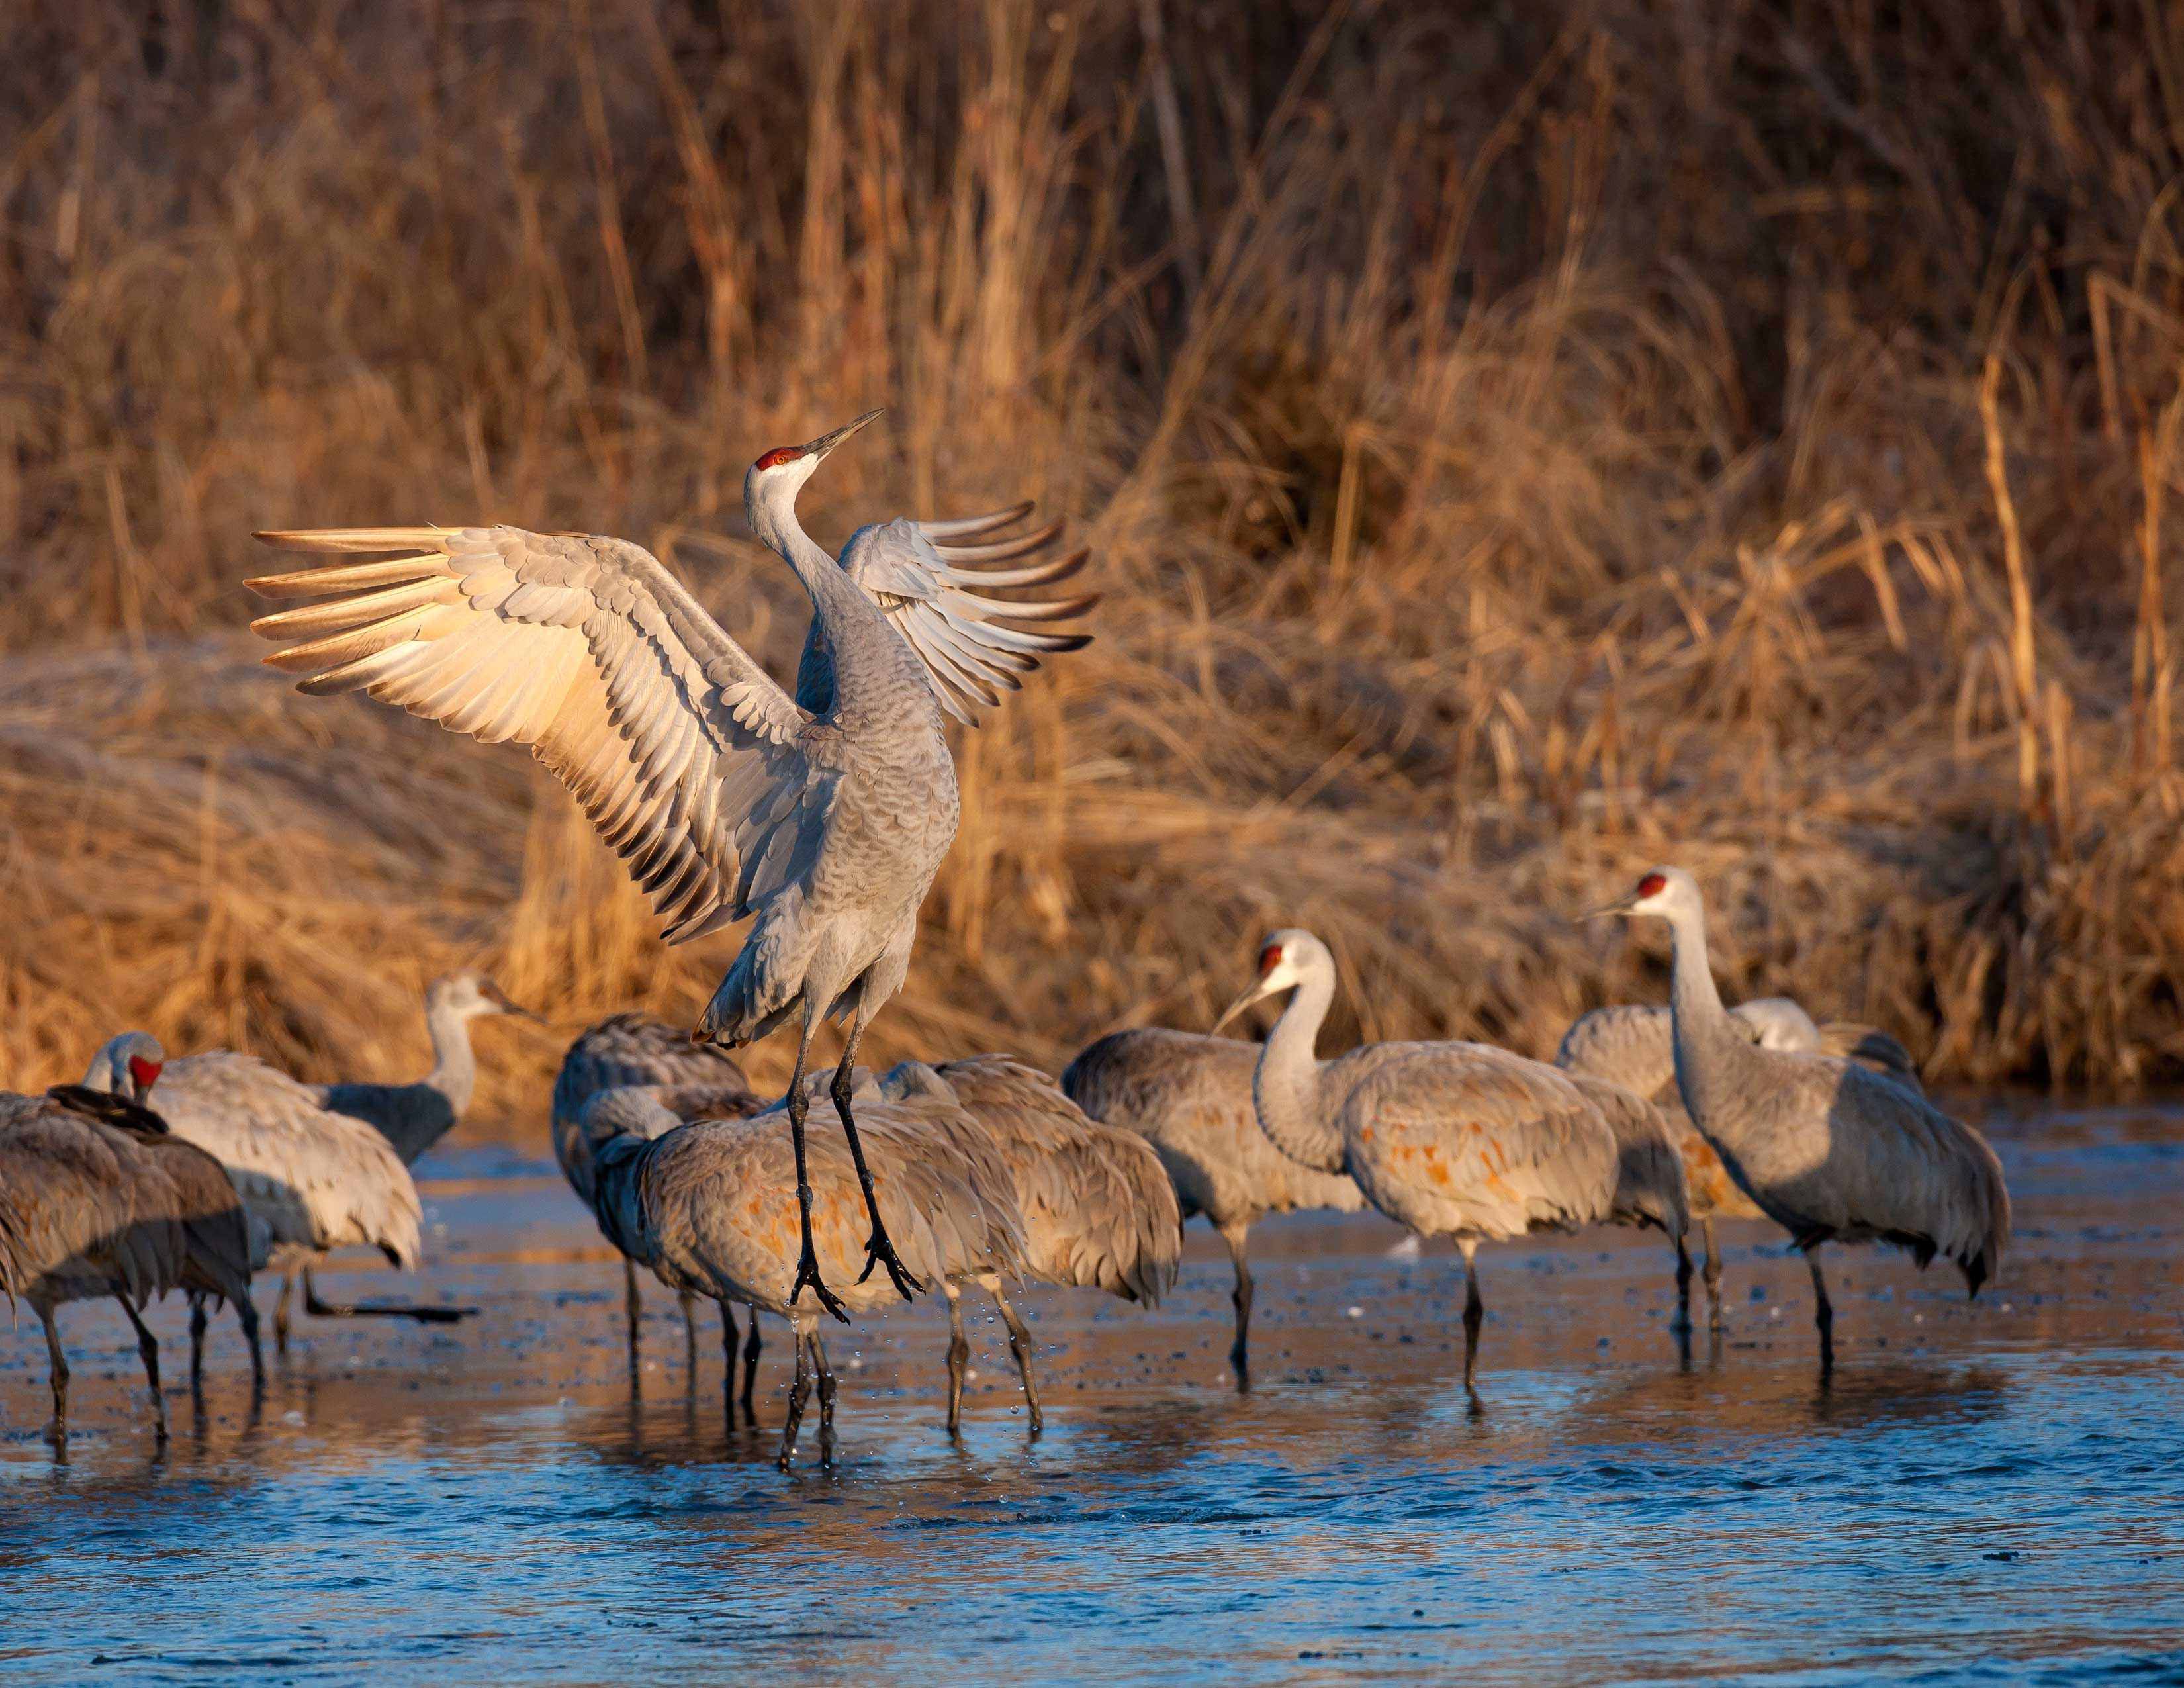 I've traveled far and wide, and coming to Nebraska, and seeing and hearing the cranes always restores my soul. – Jane Goodall